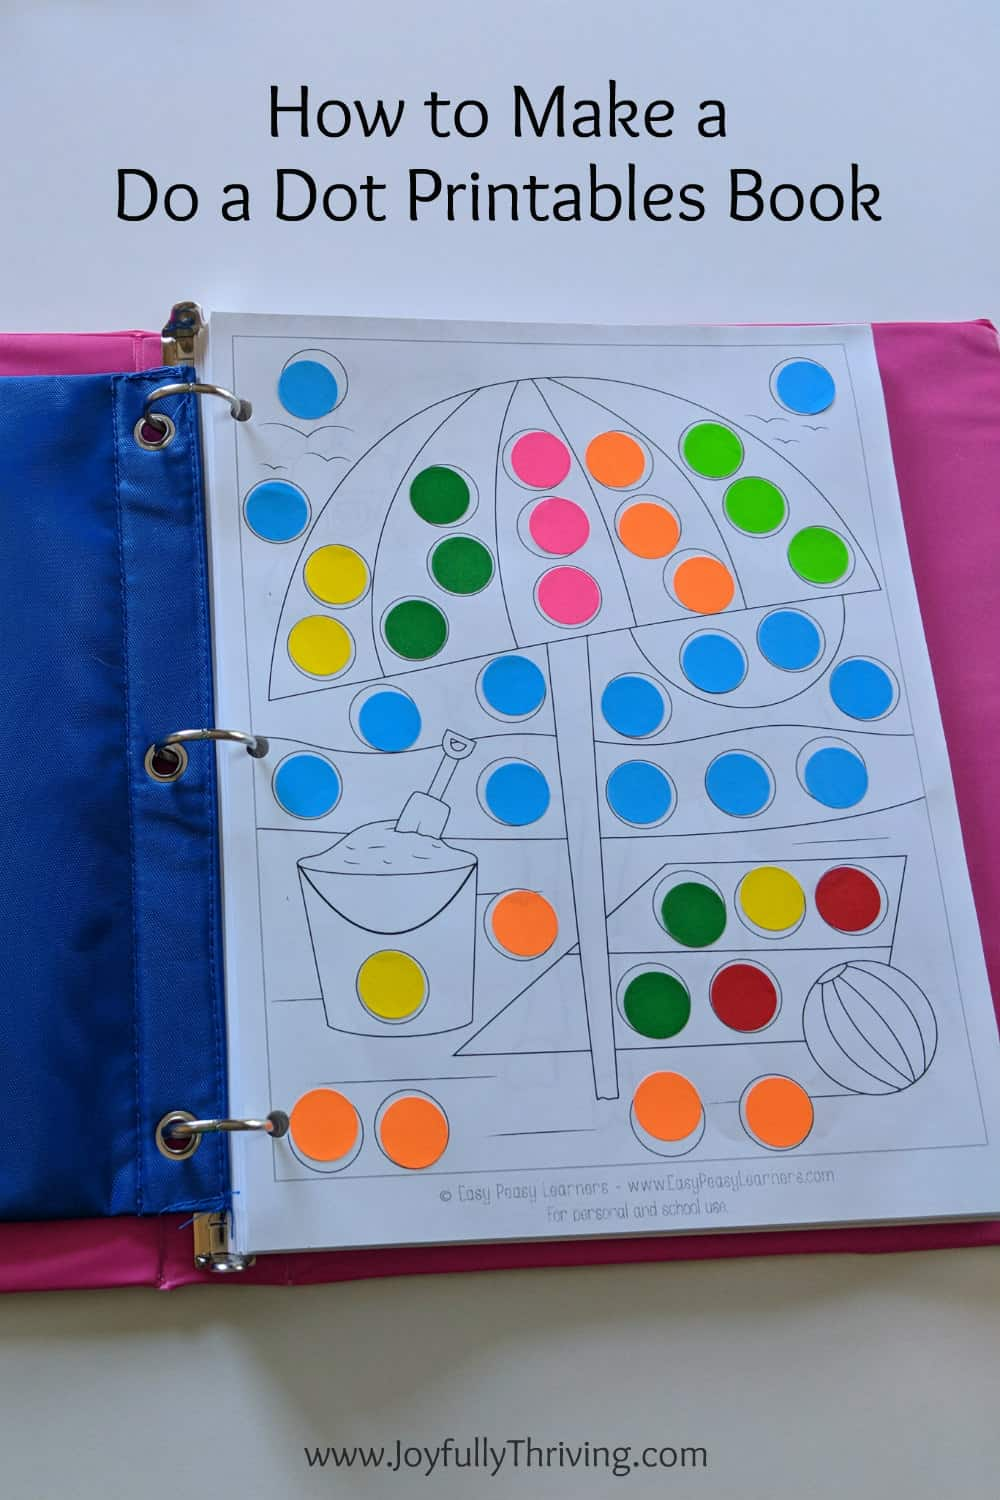 How to Make a Do a Dot Printables Book